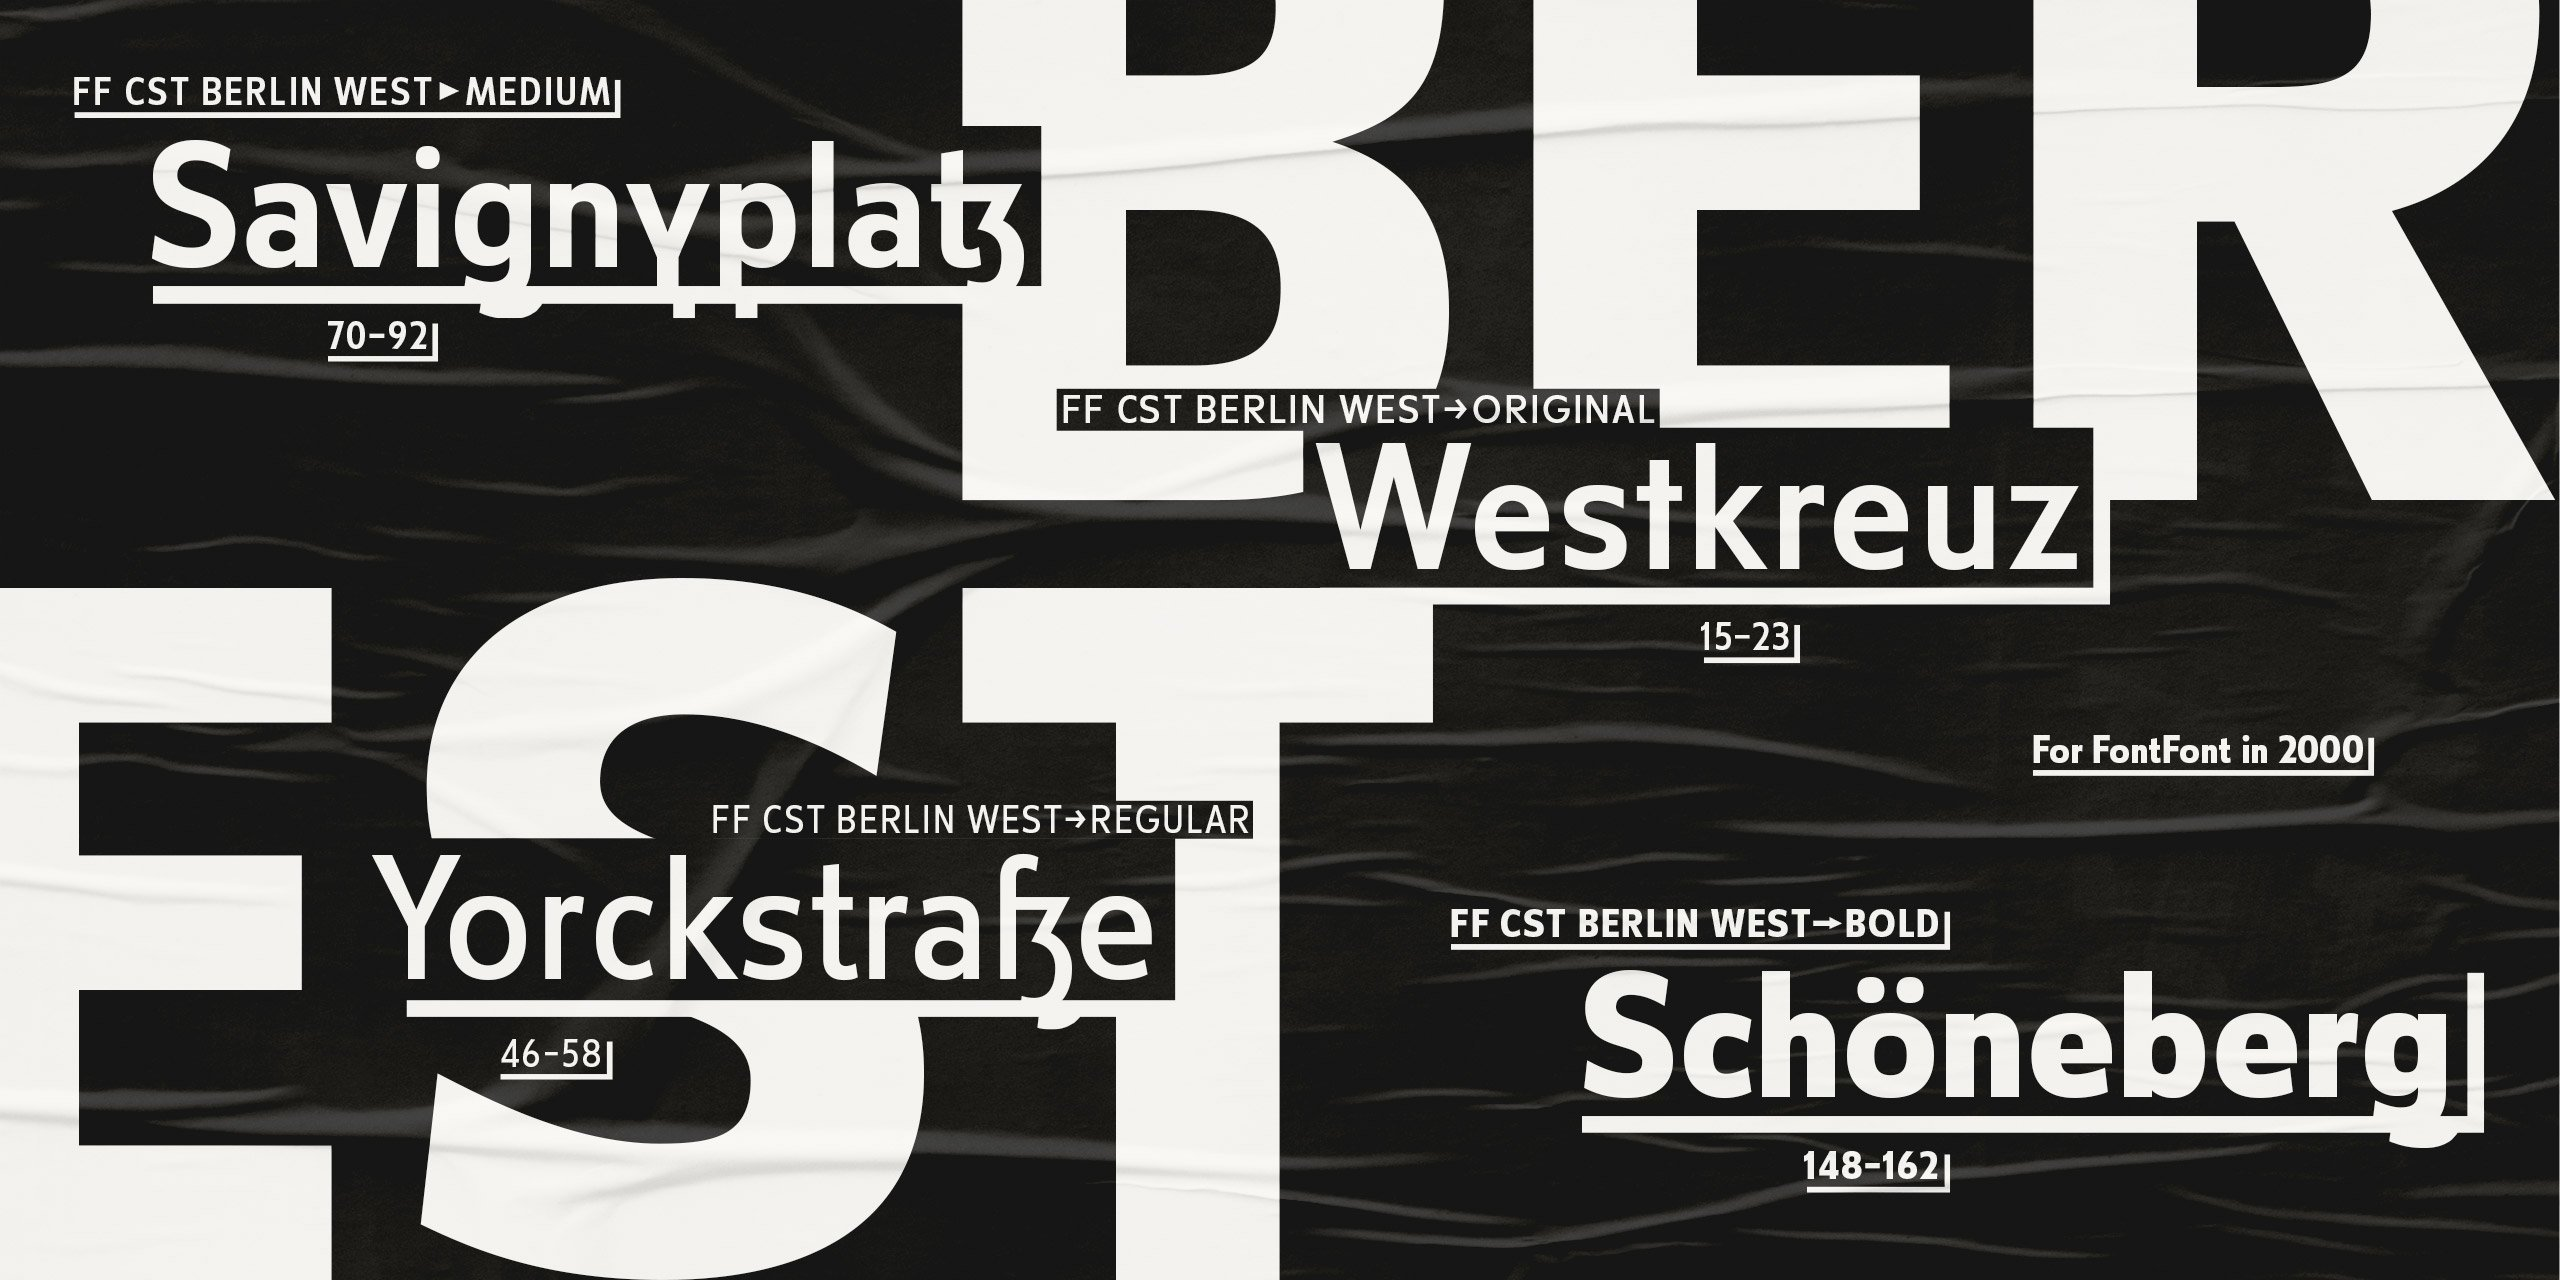 Showing for FF CST Berlin West by Alexandra Schwarzwald